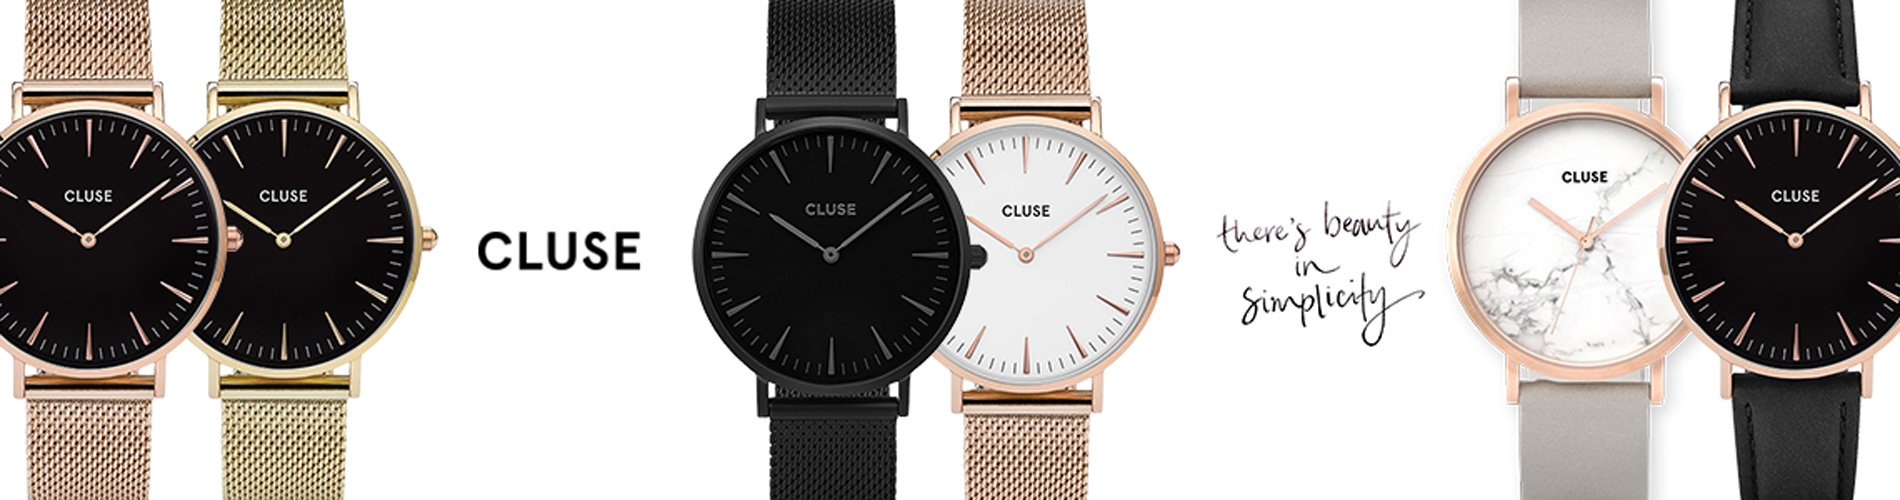 CLUSE Collection